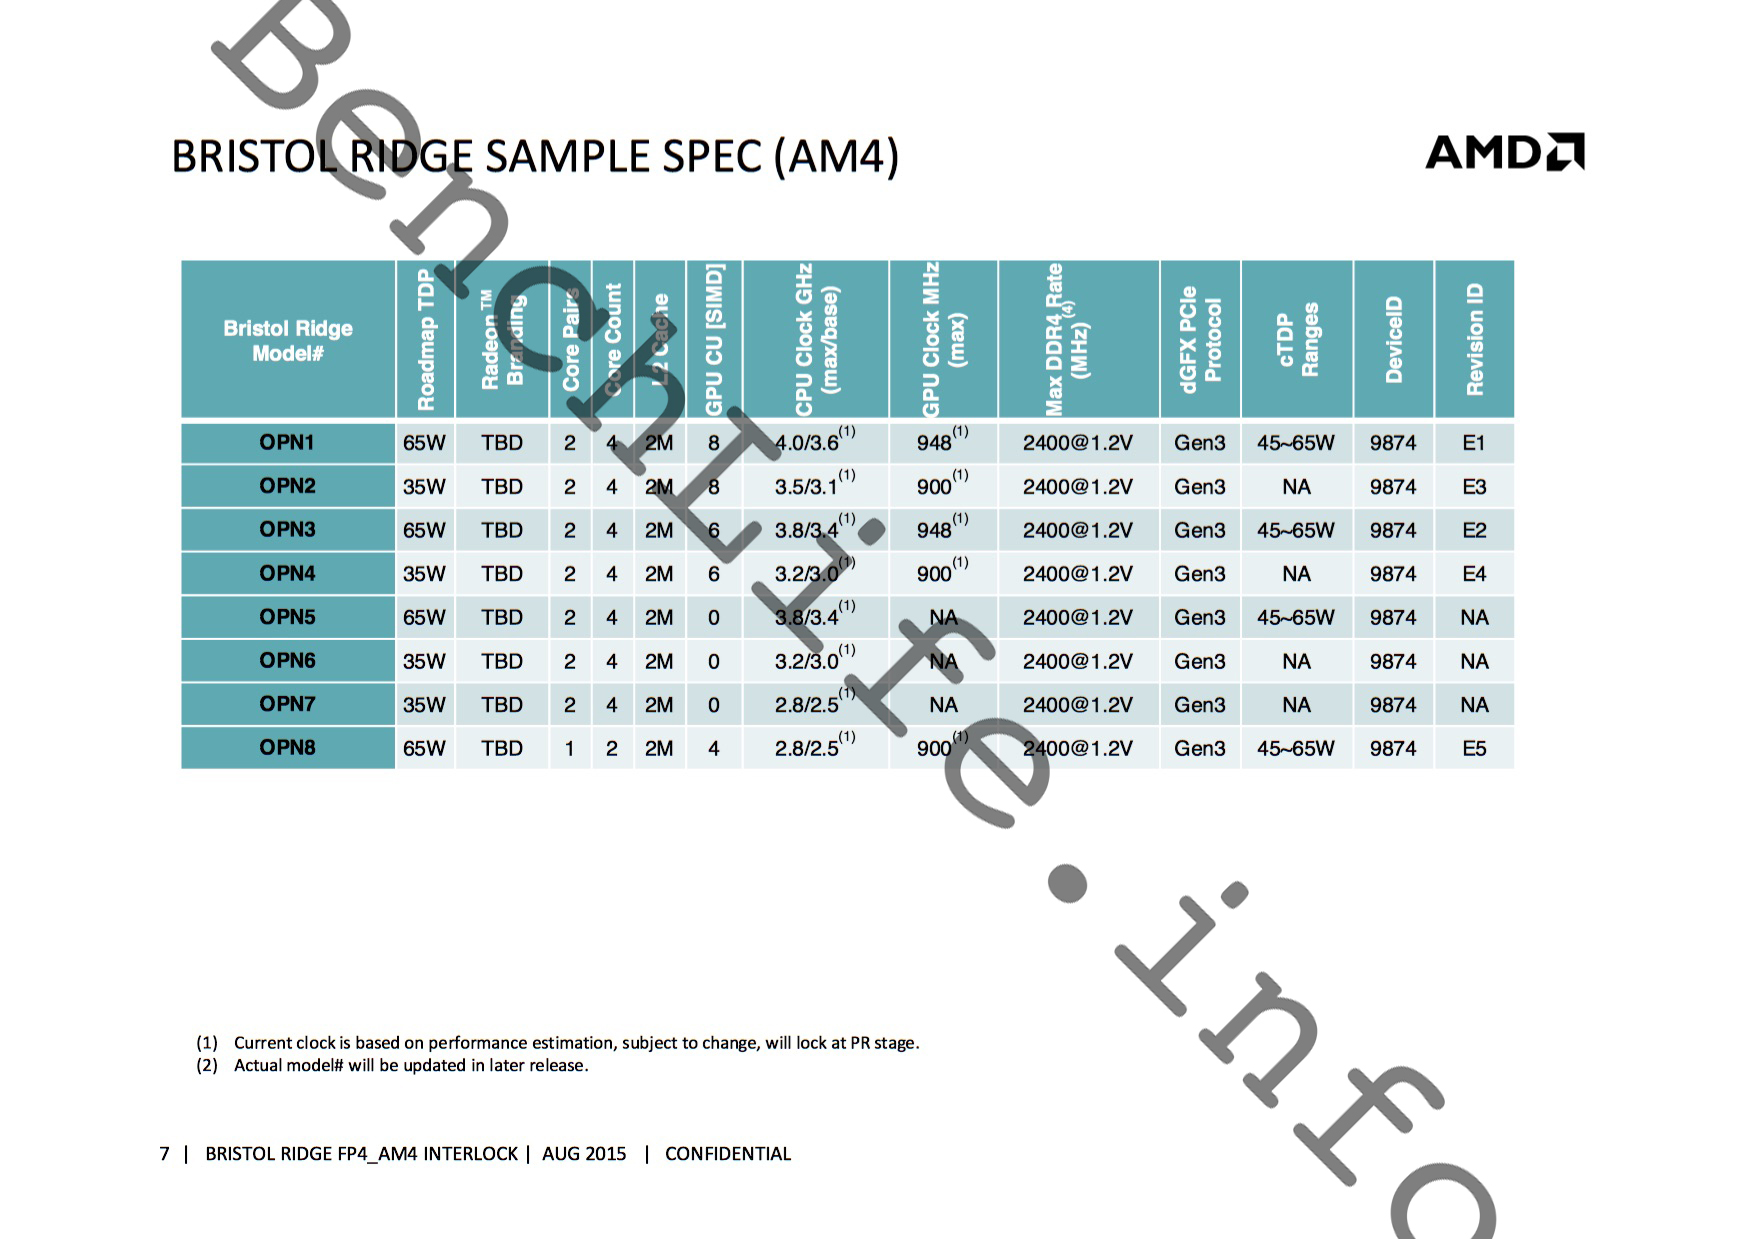 BRISTOL RIDGE SAMPLE SPEC (AM4)